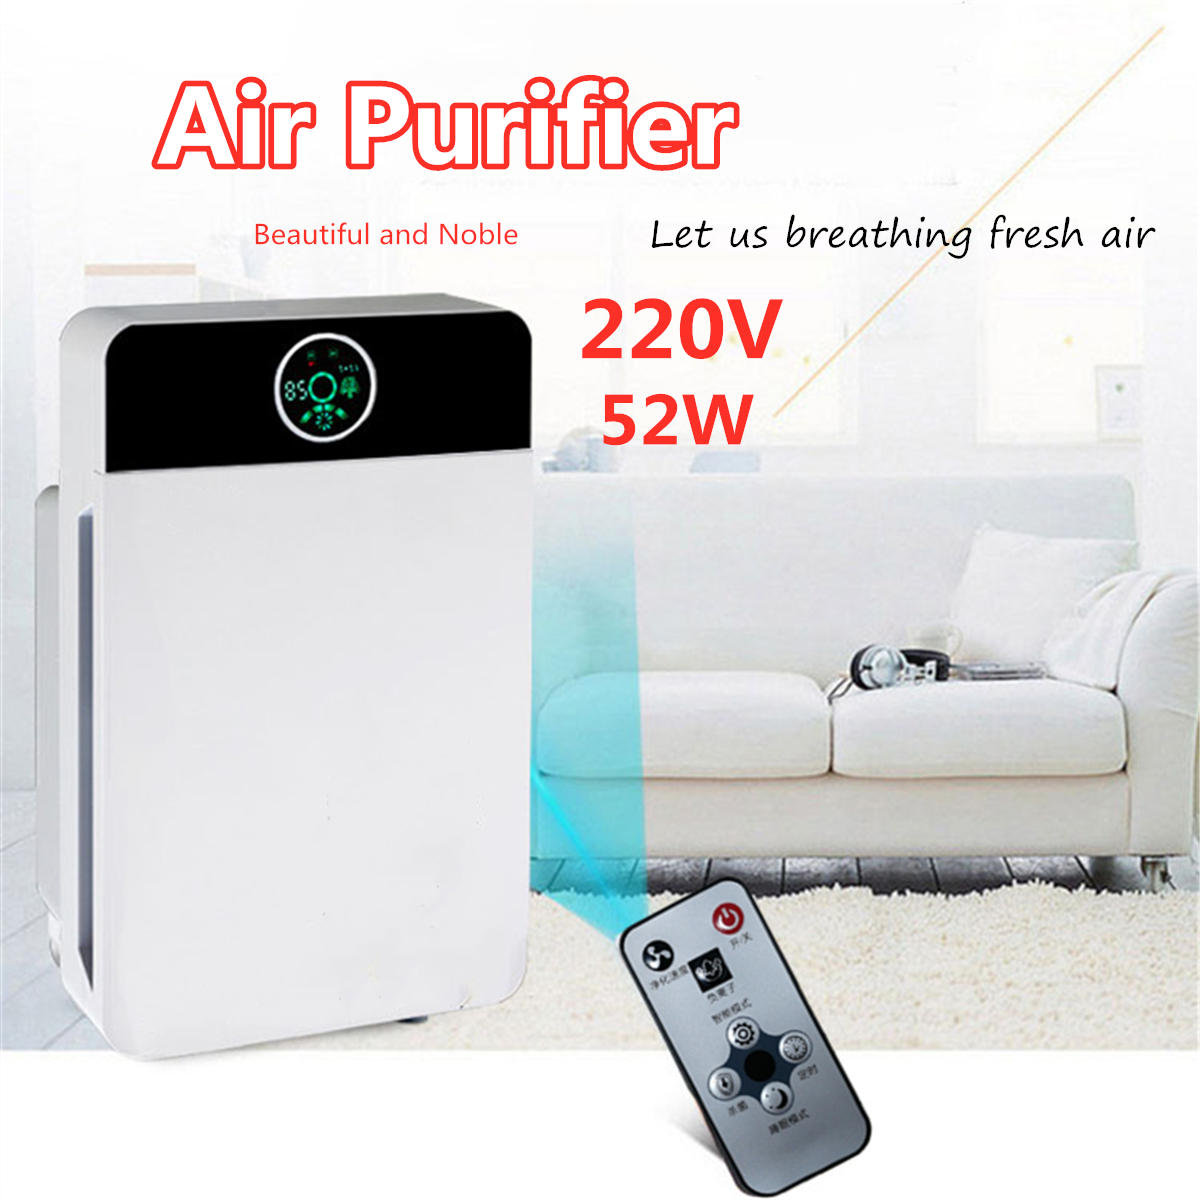 US121.91 28 220V Air Purifier Ozone Anion Allergens Dust